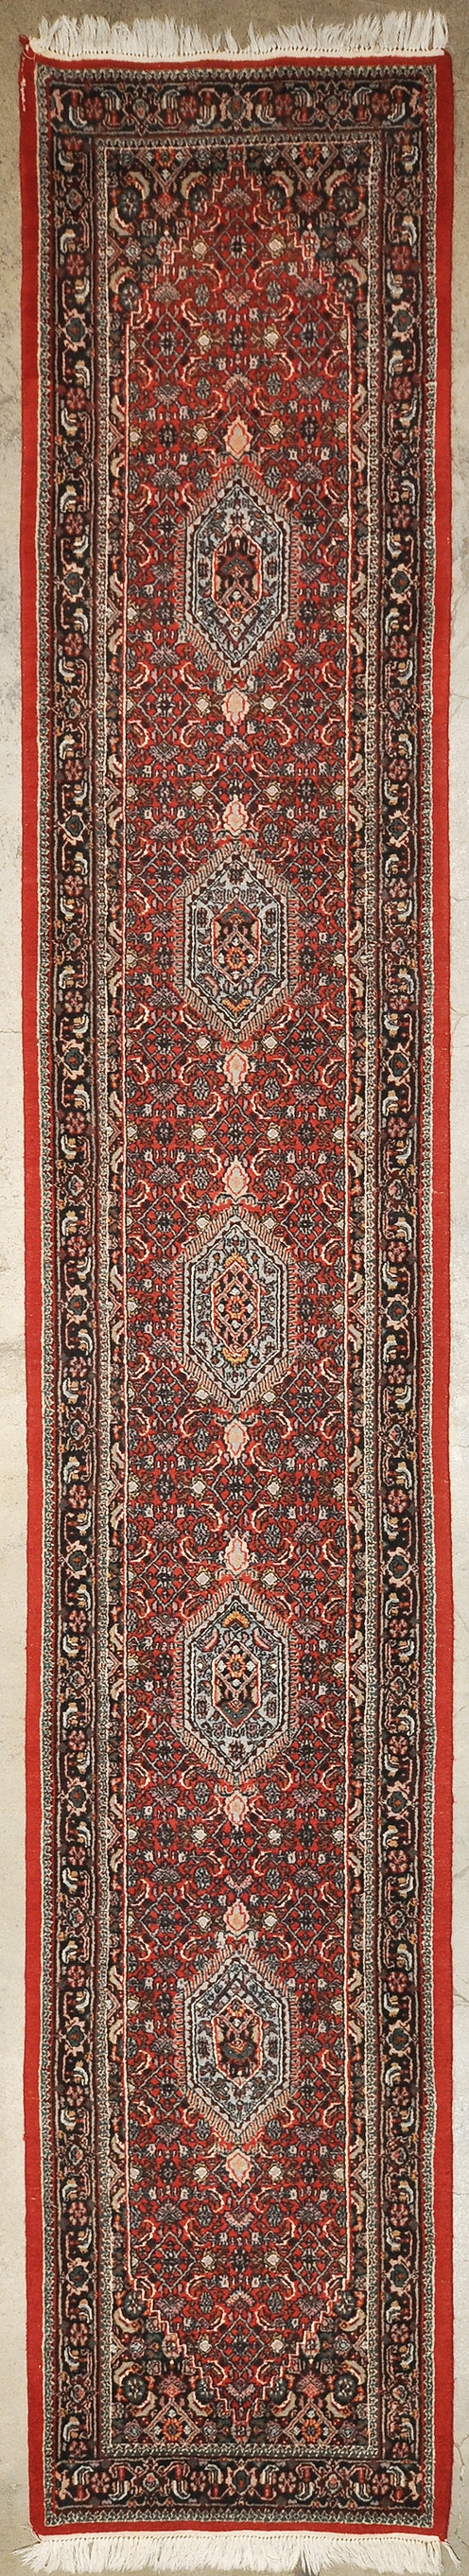 Antique Bijar rugs and more oriental carpet 27822-